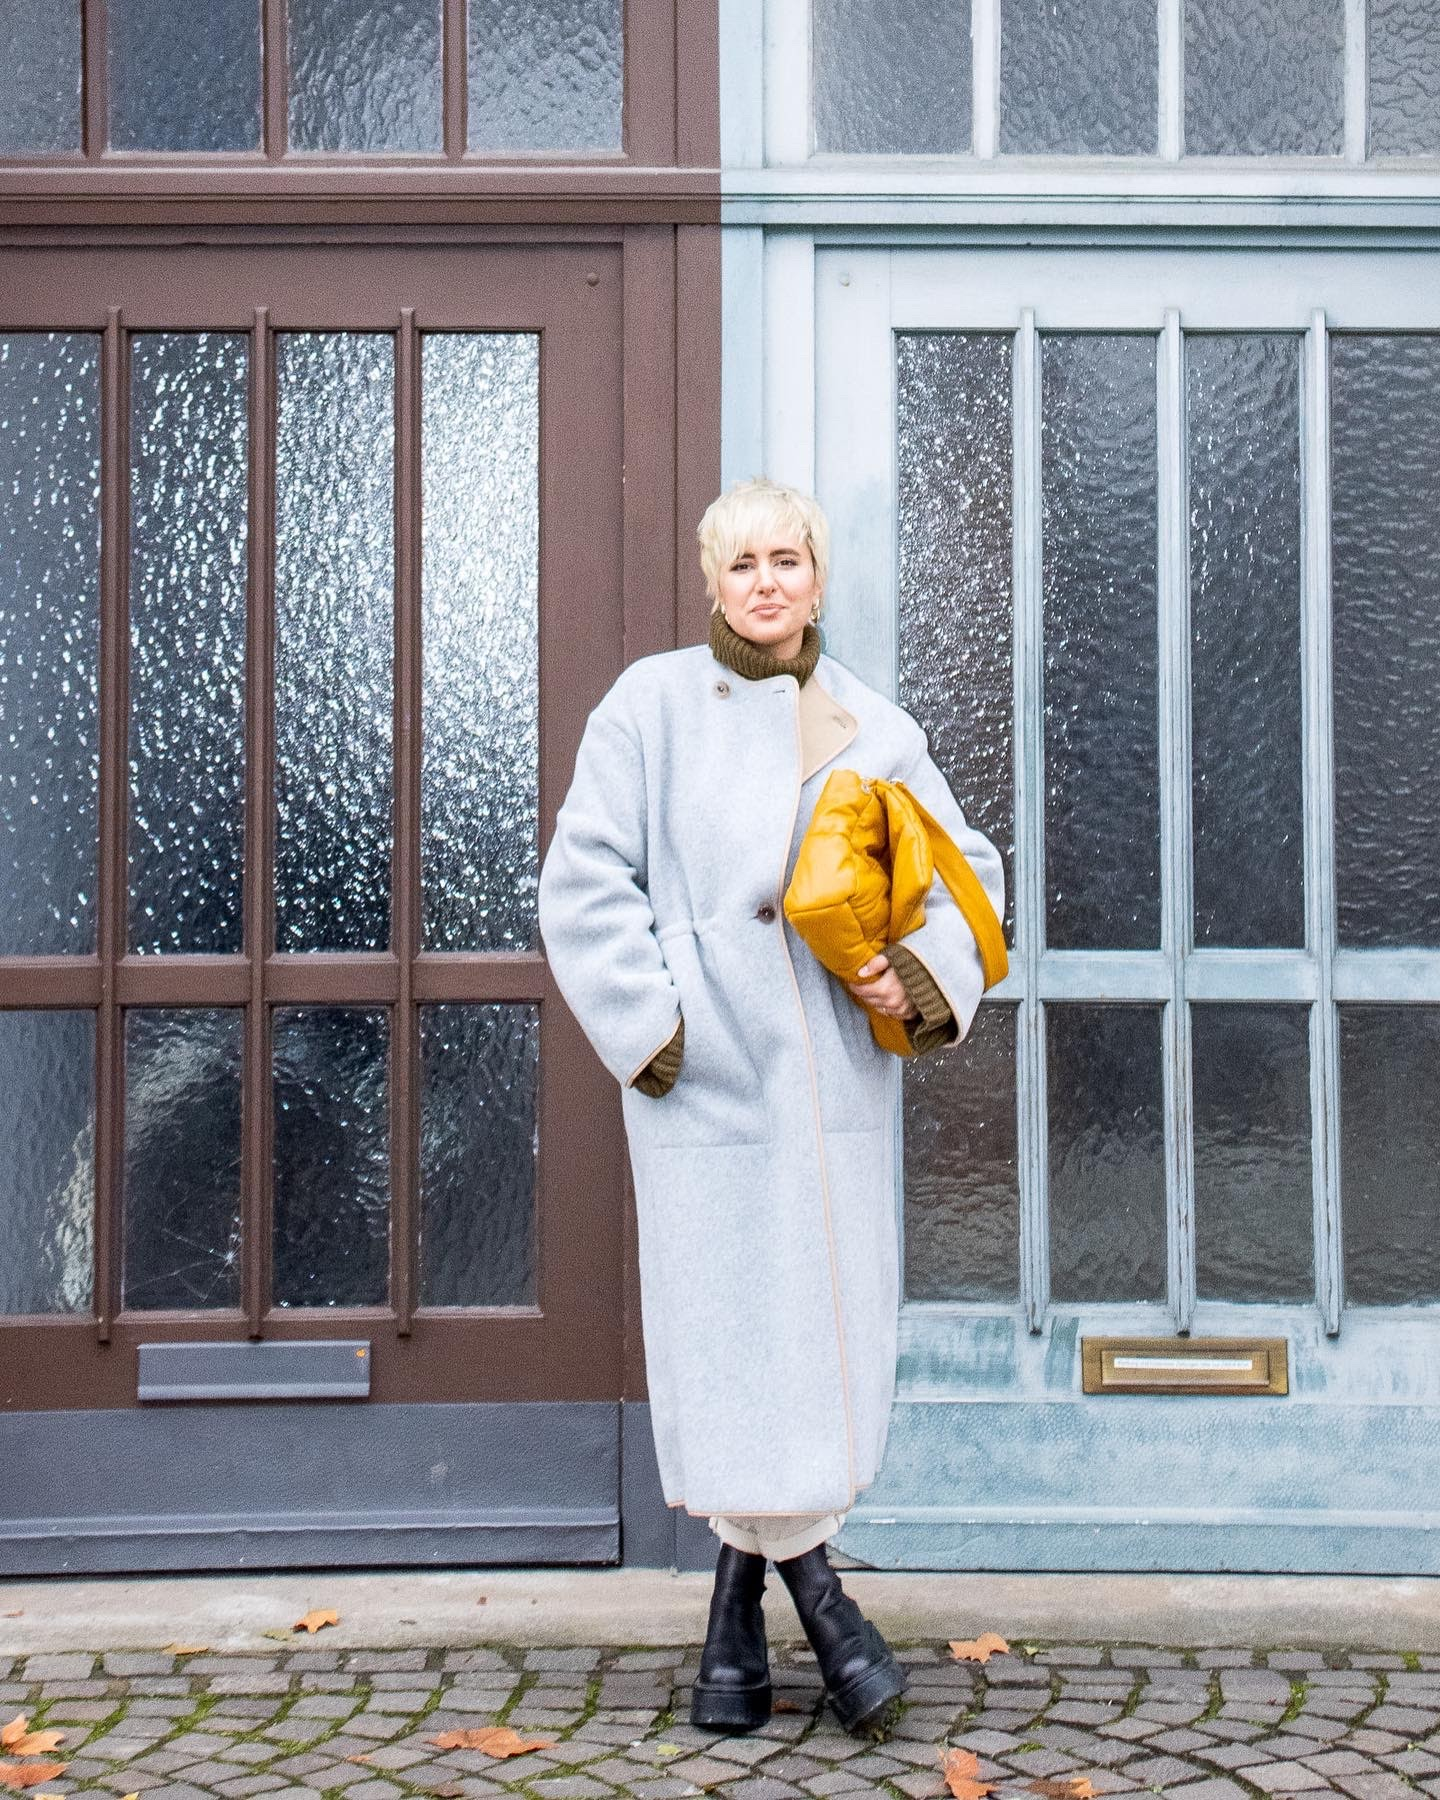 Statement Outerwear Style Challenge wearing Rodebjer @RebeccaInEurope